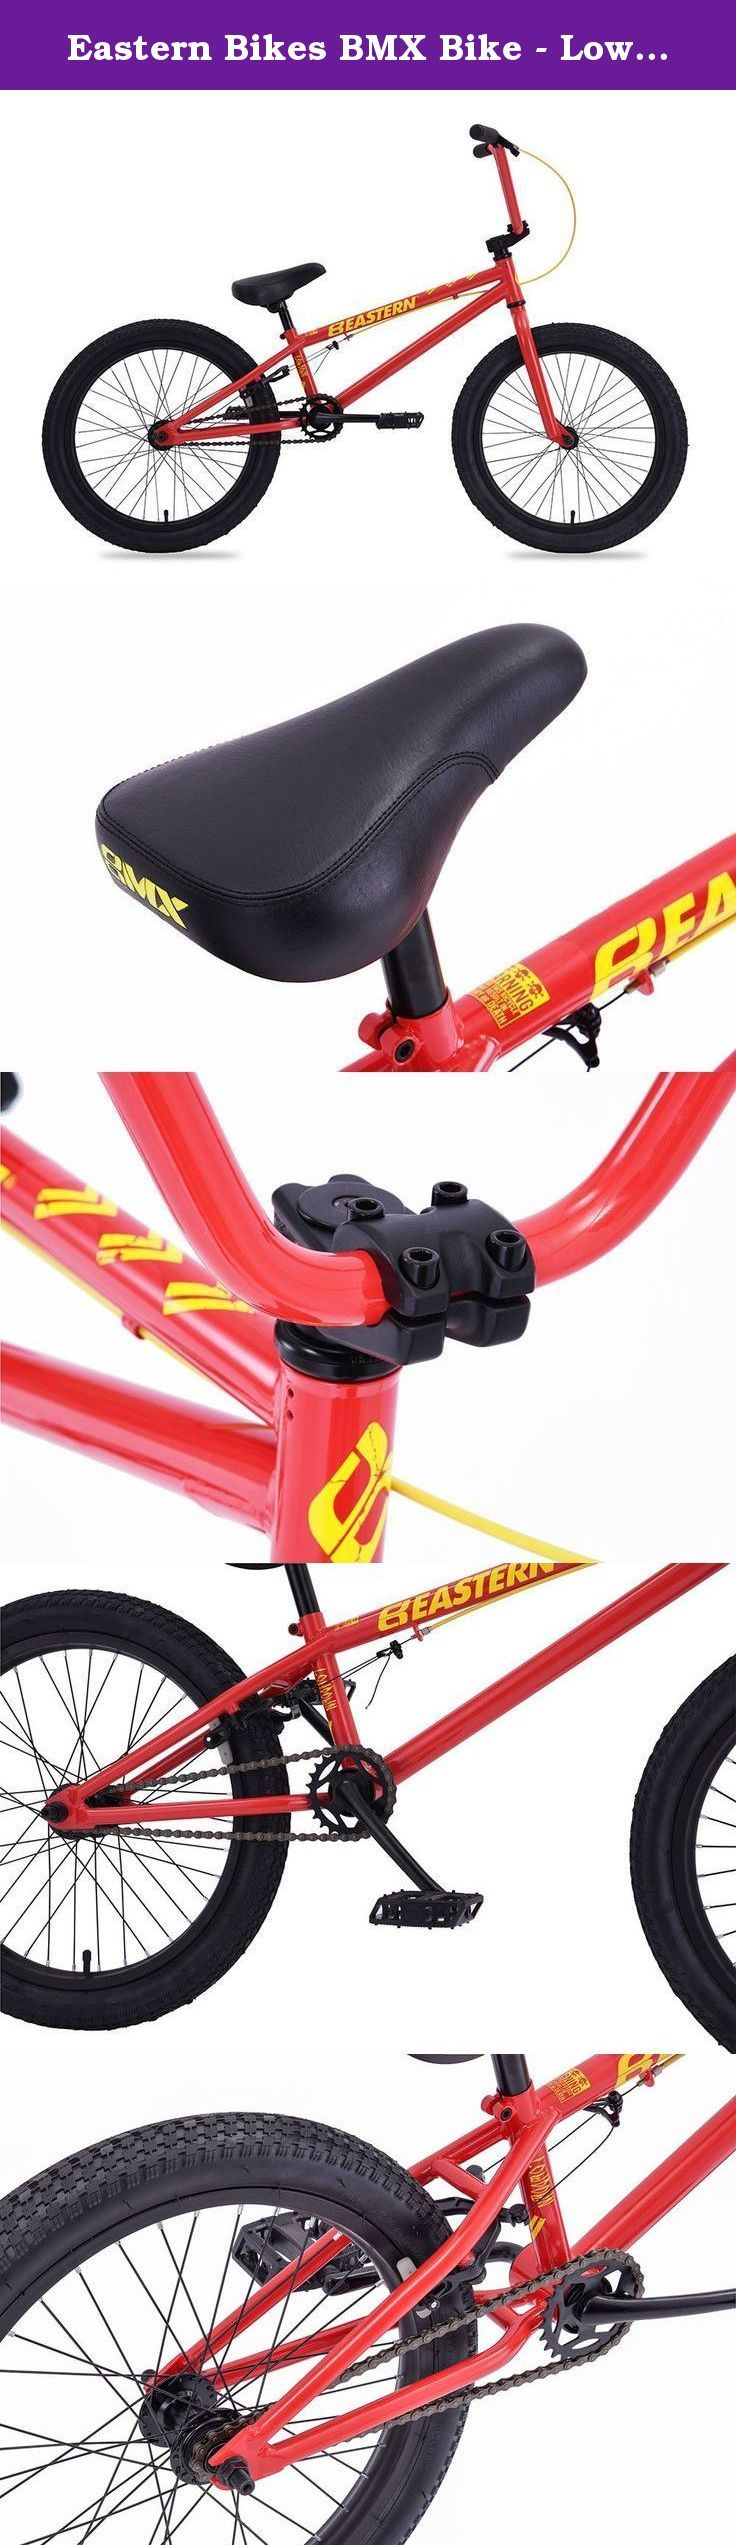 """Eastern Bikes BMX Bike - Lowdown Red, 20"""". The Lowdown 20"""" from Eastern Bikes is an affordable and durable BMX bike. The Lowdown has features you simply won't find on other cheap BMX bikes. Its sealed wheels are a huge deal as they greatly extend the Service life of your bike. Durable frame and fork construction along with comfortable features like riblet grips and a padded seat make the Lowdown an incredible value."""